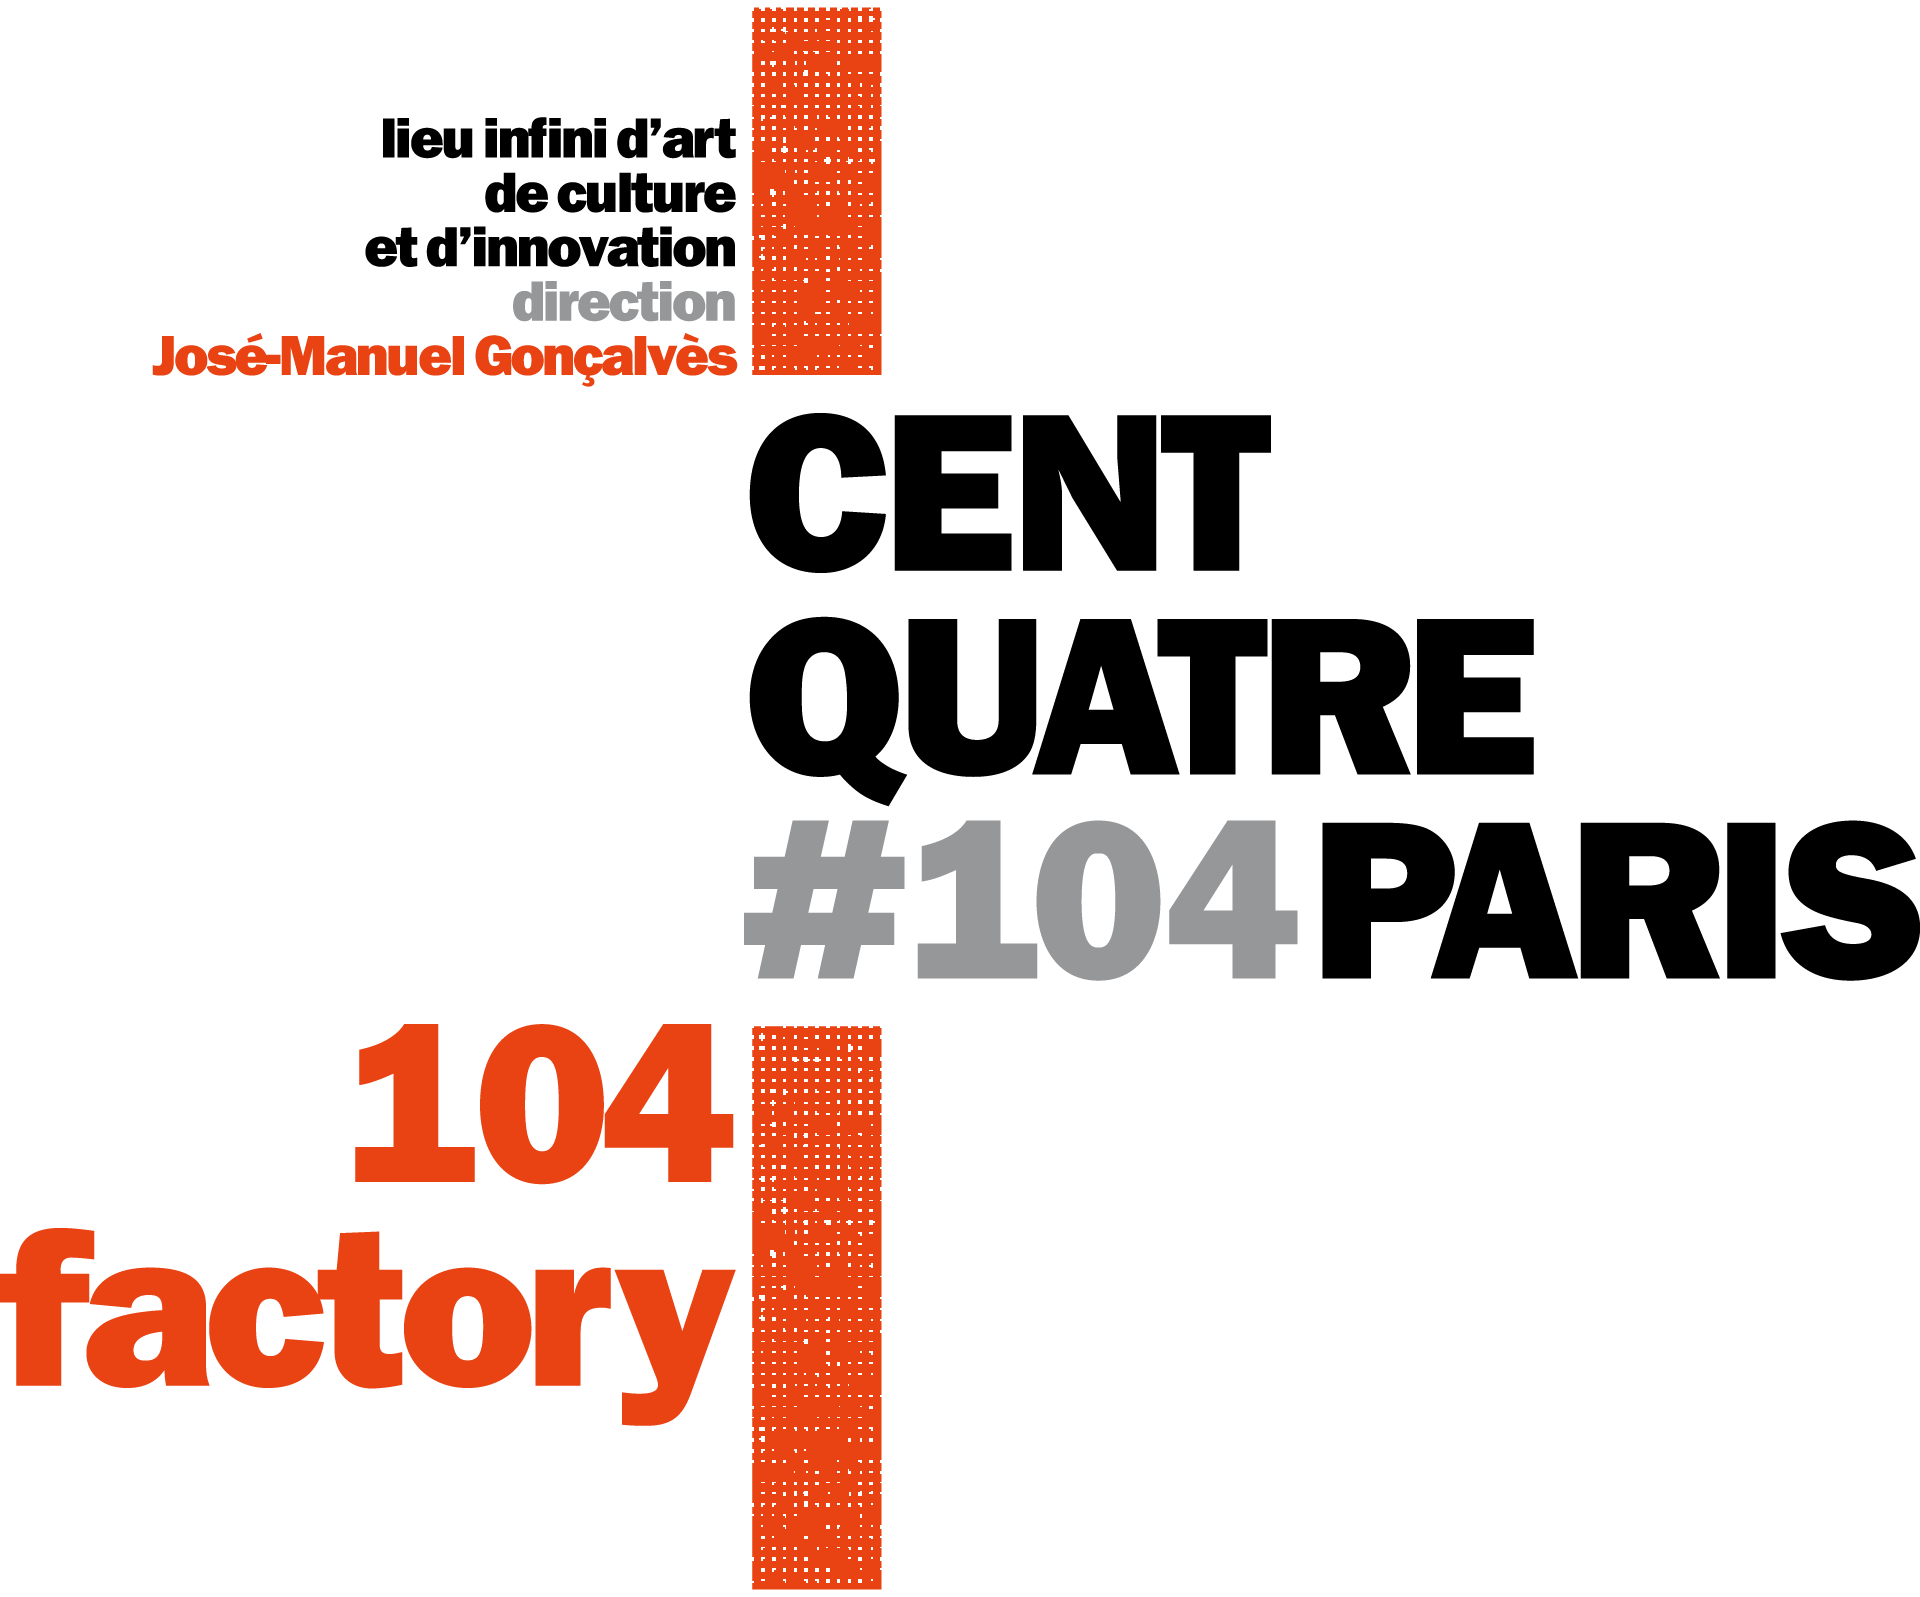 104 factory